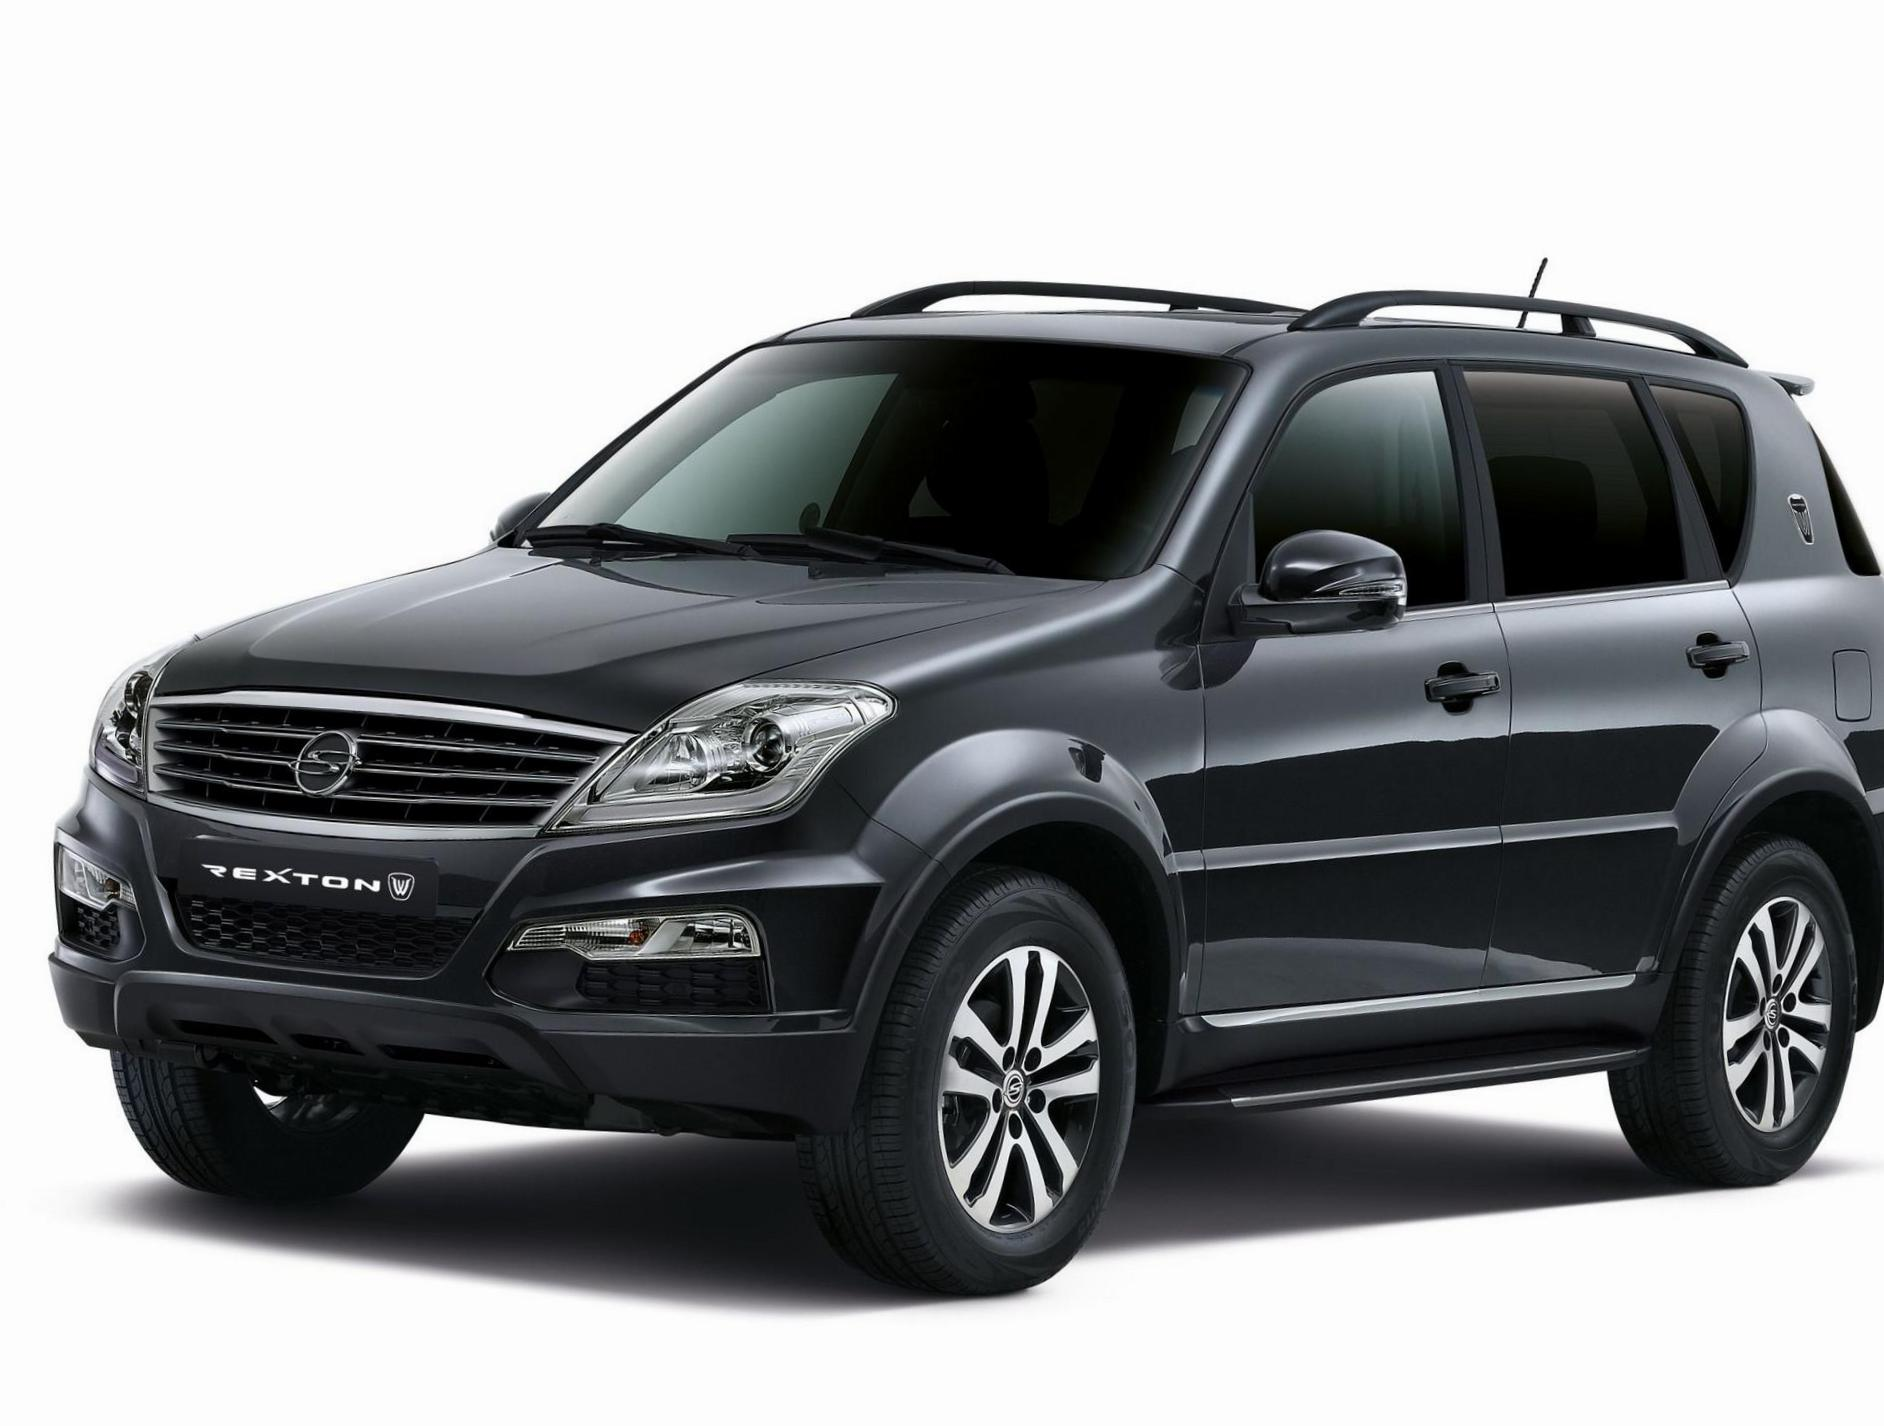 ssangyong rexton w photos and specs photo ssangyong rexton w review and 26 perfect photos of. Black Bedroom Furniture Sets. Home Design Ideas